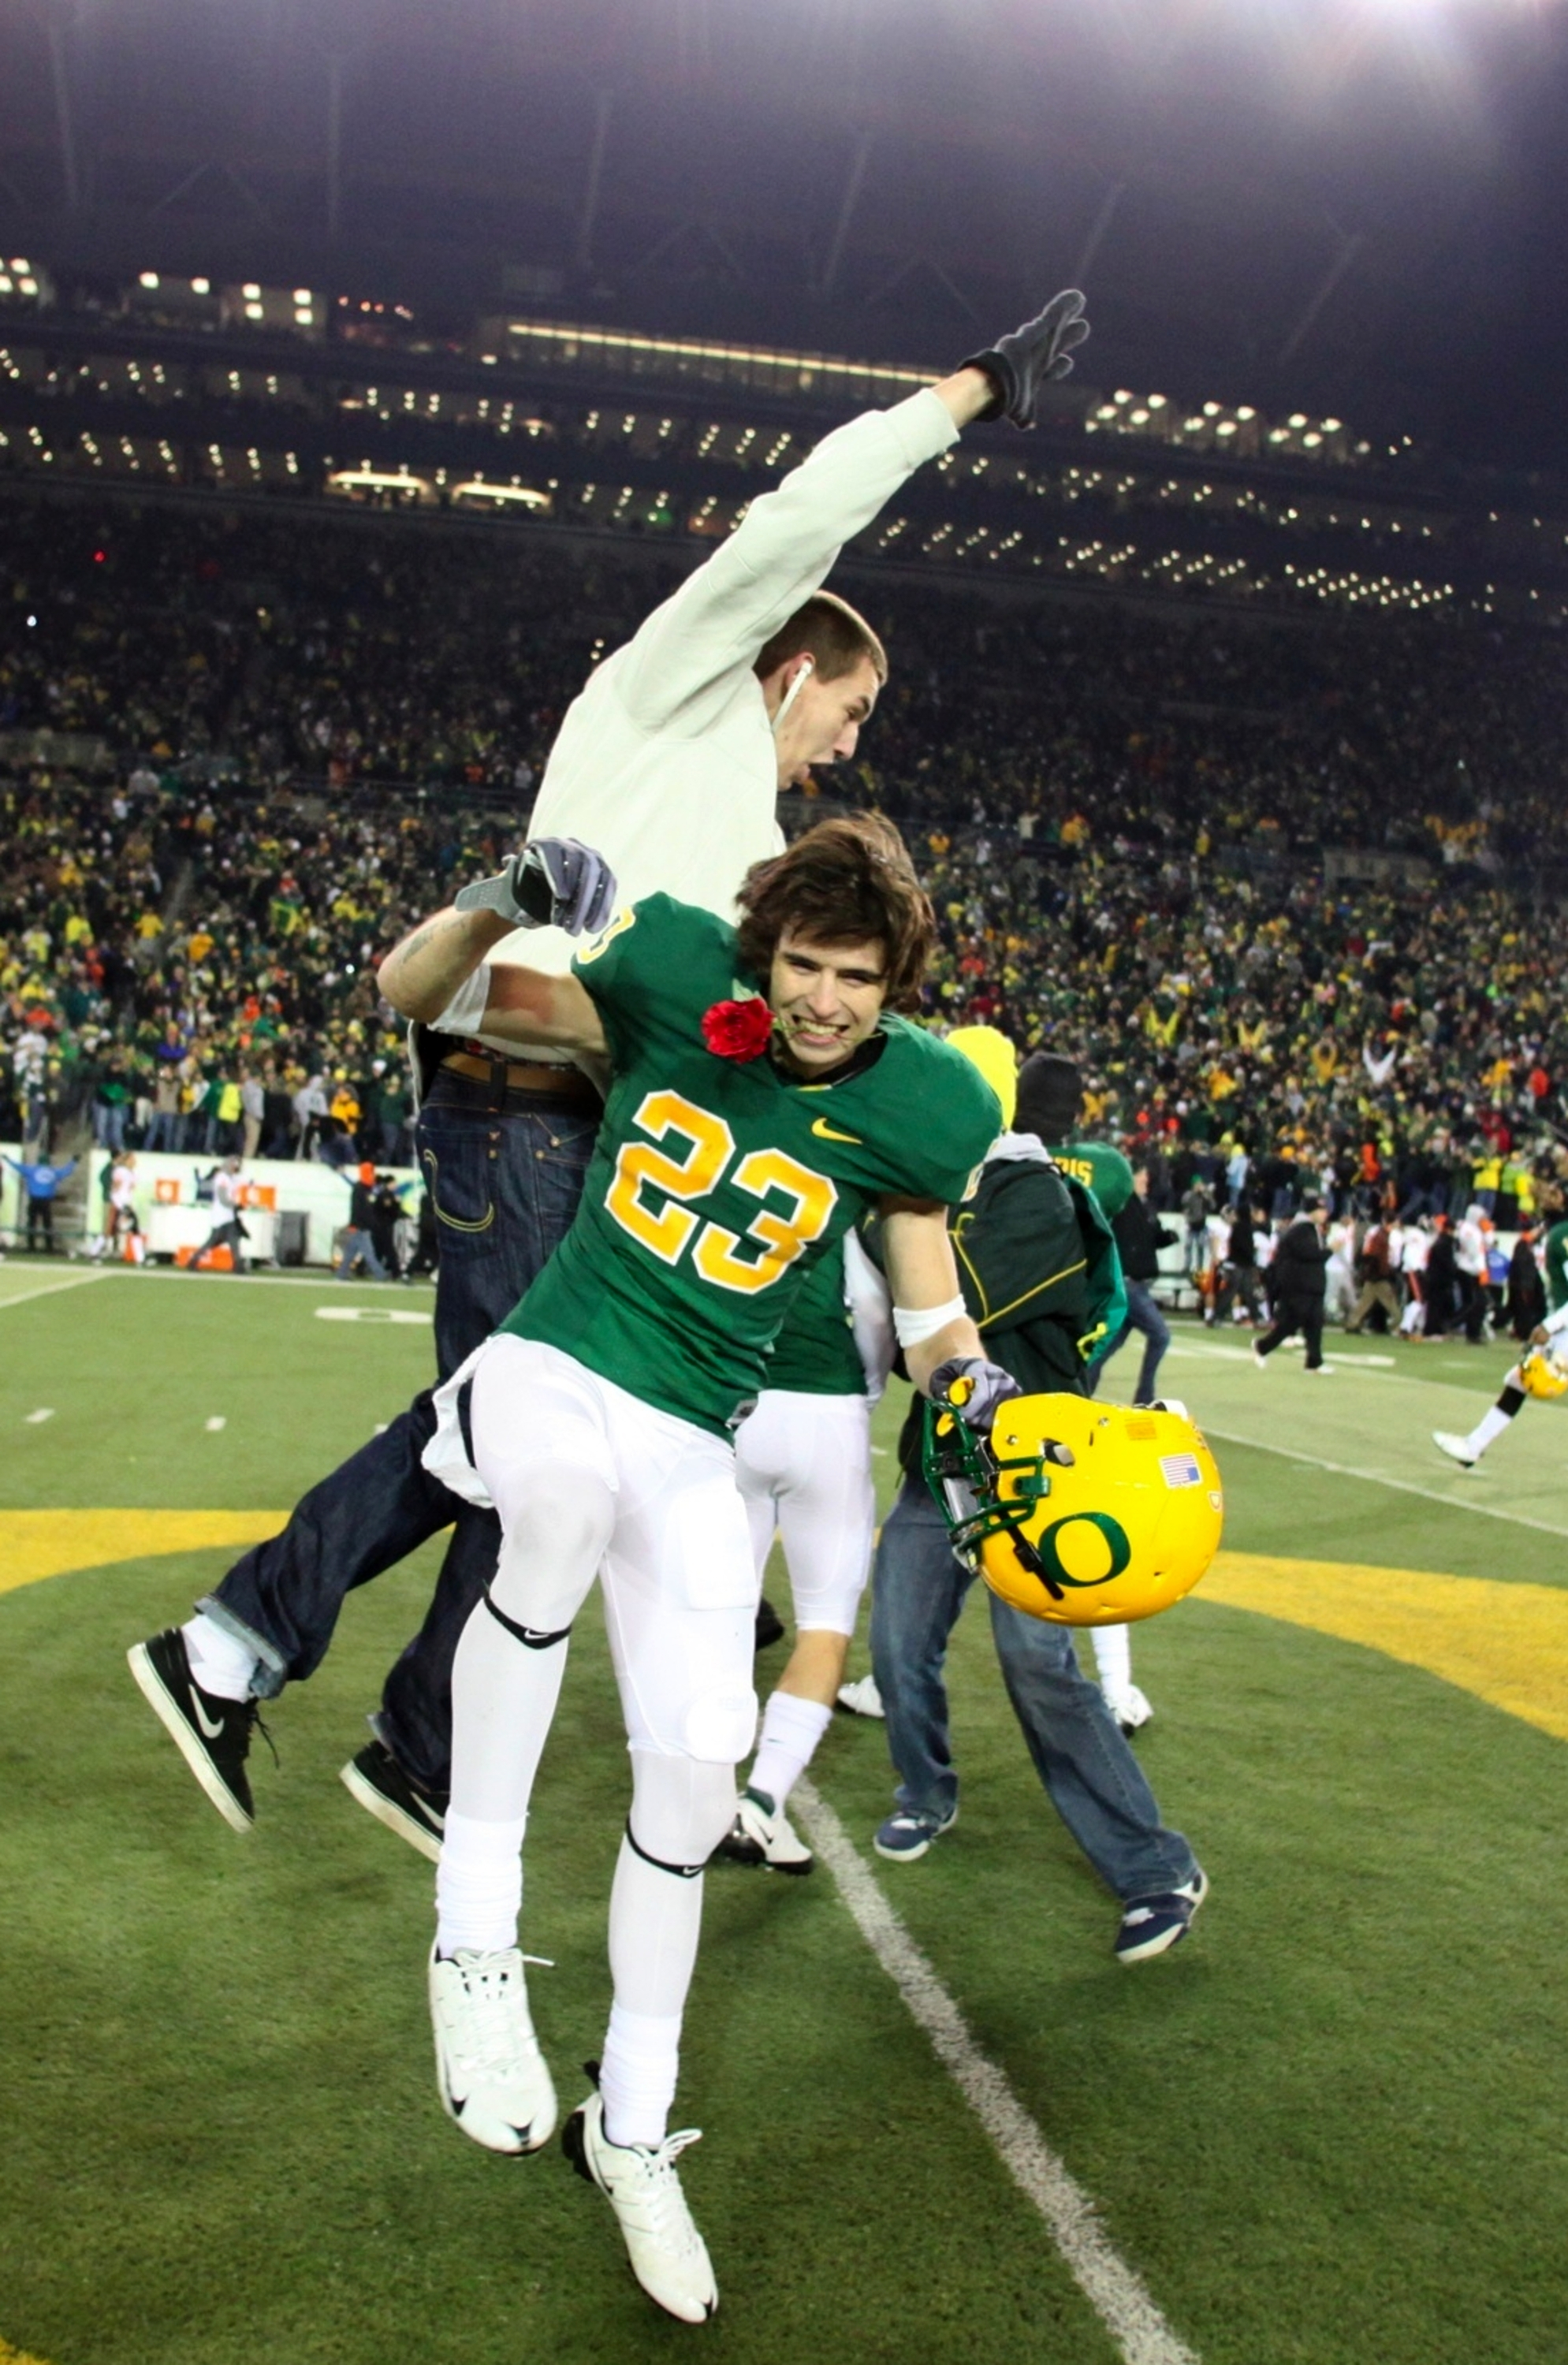 EUGENE,OR - DECEMBER 03:  Wide receiver Jeff Maehl #23 of the Oregon Ducks celebrates after defeating the Oregon State Beavers 33-37 at Autzen Stadium on December 3, 2009 in Eugene, Oregon.  (Photo by Tom Hauck/Getty Images)